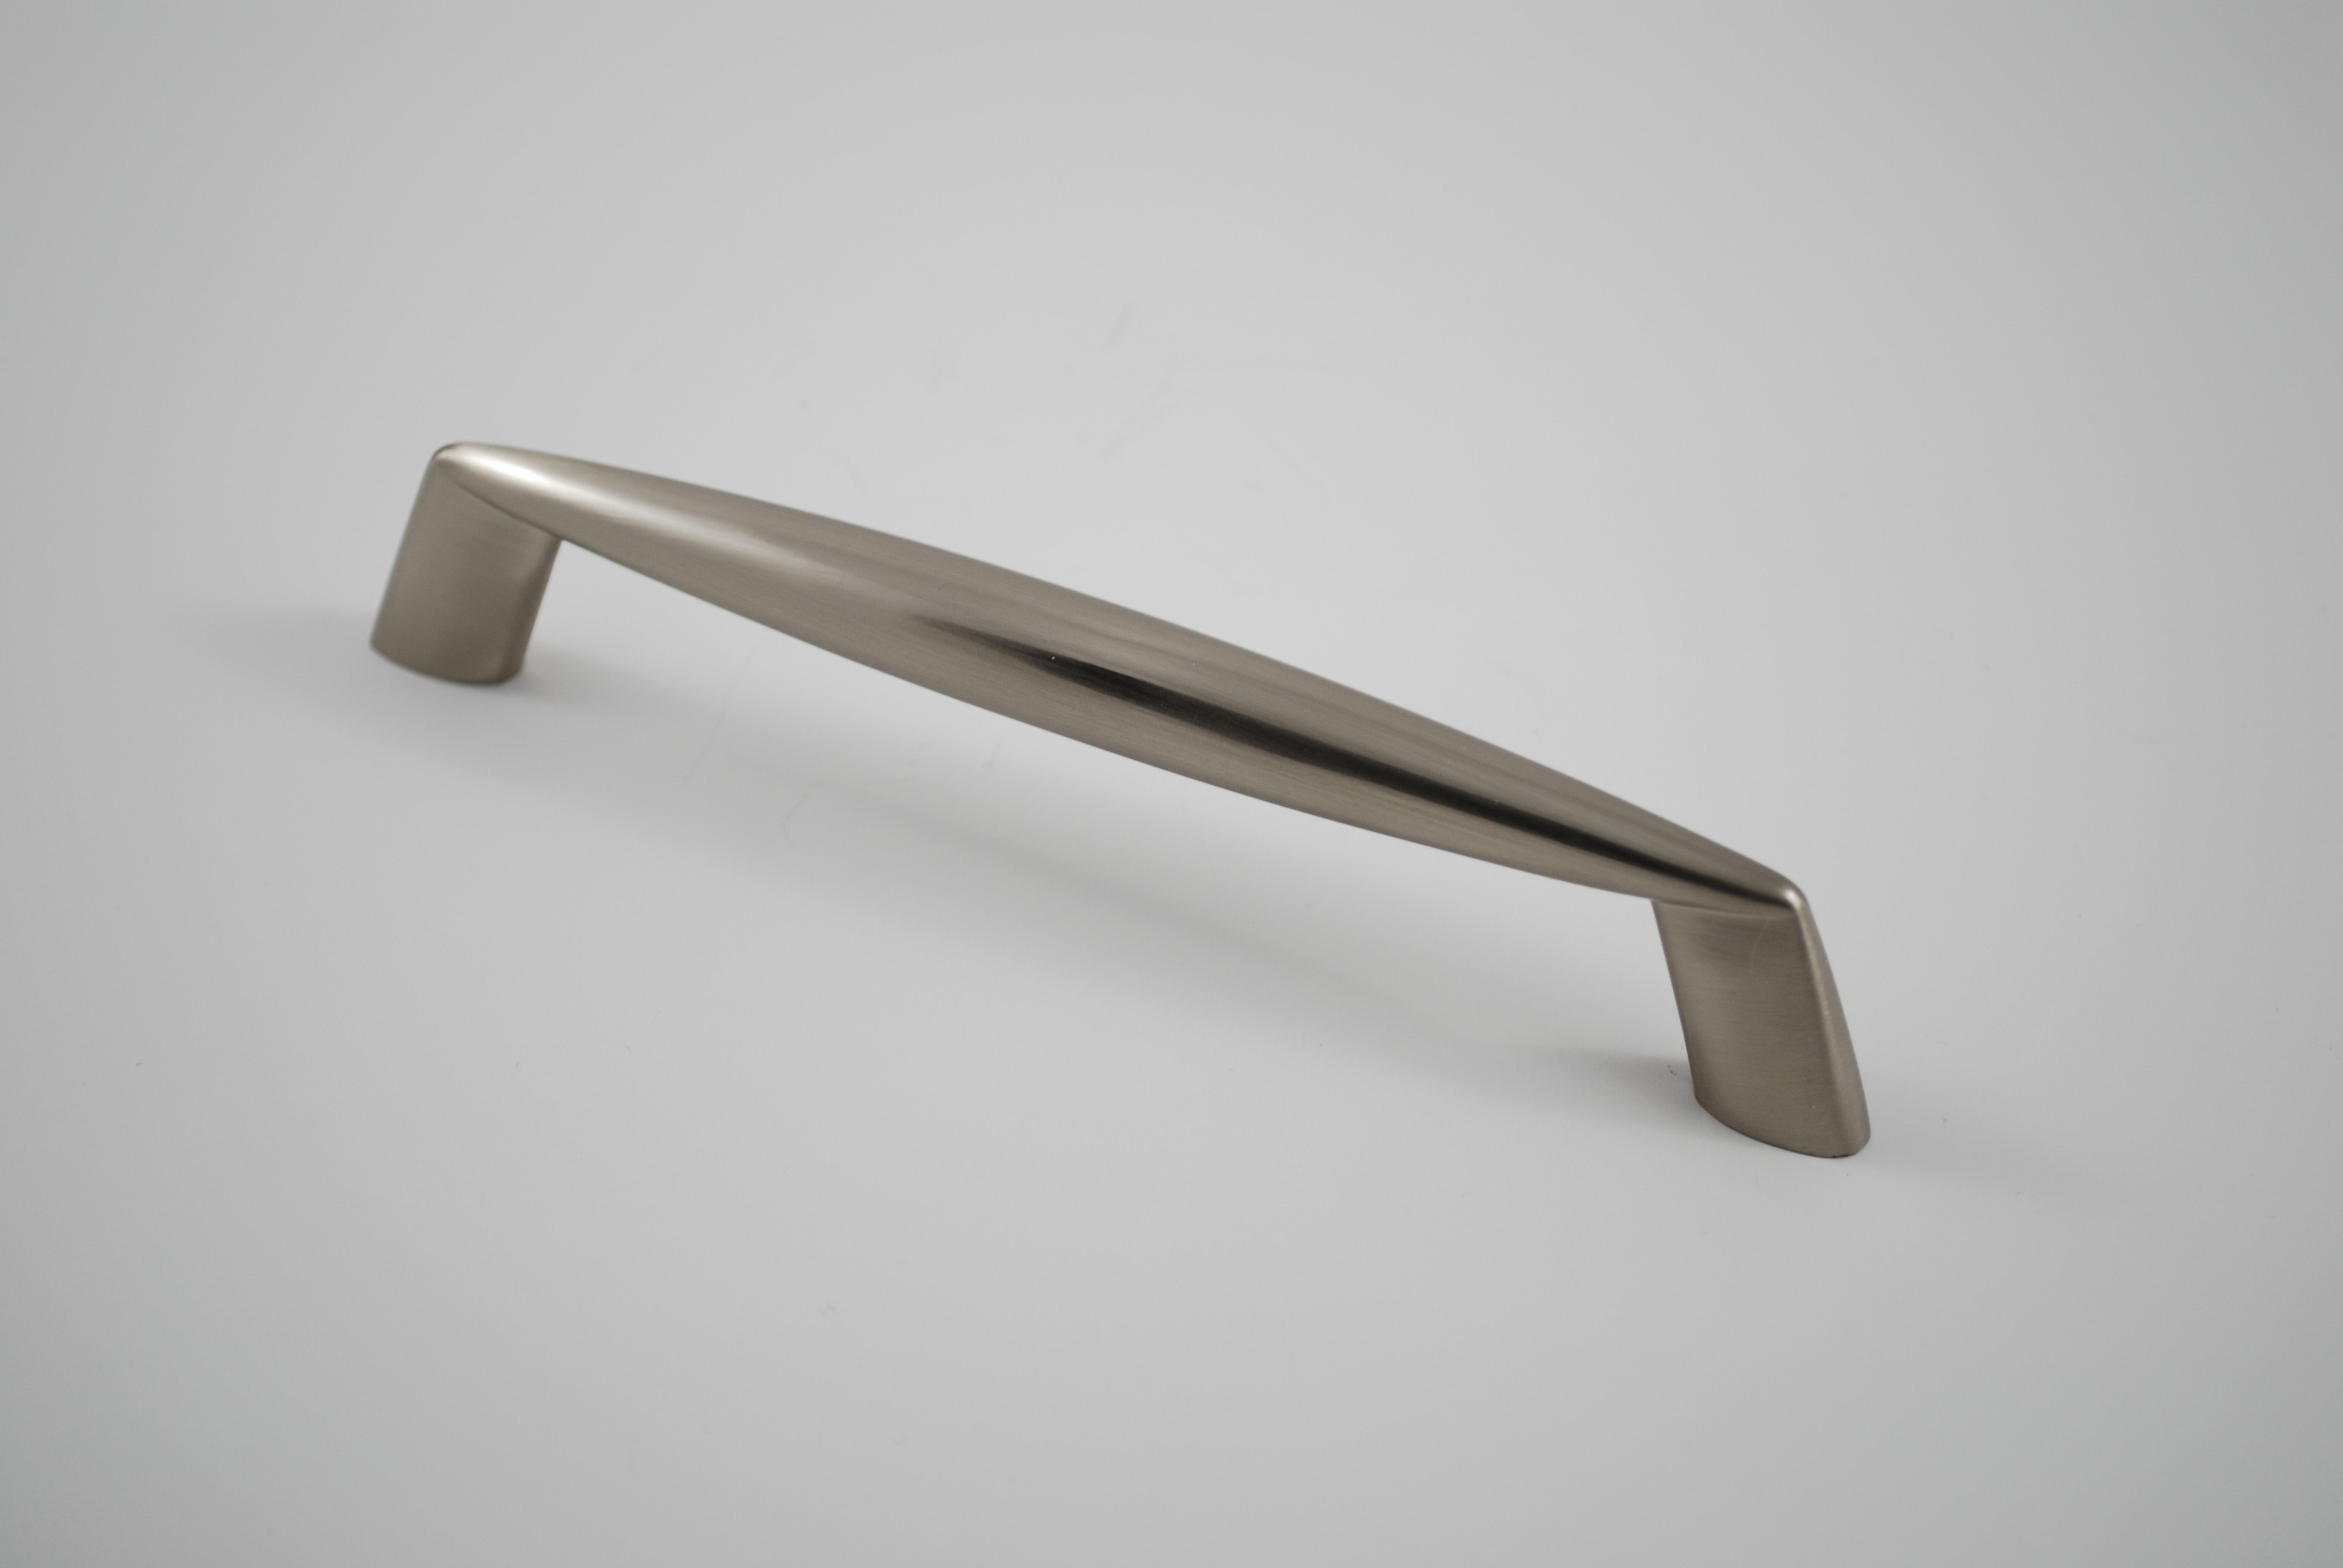 Residential Essentials 10287 Cabinet Pull